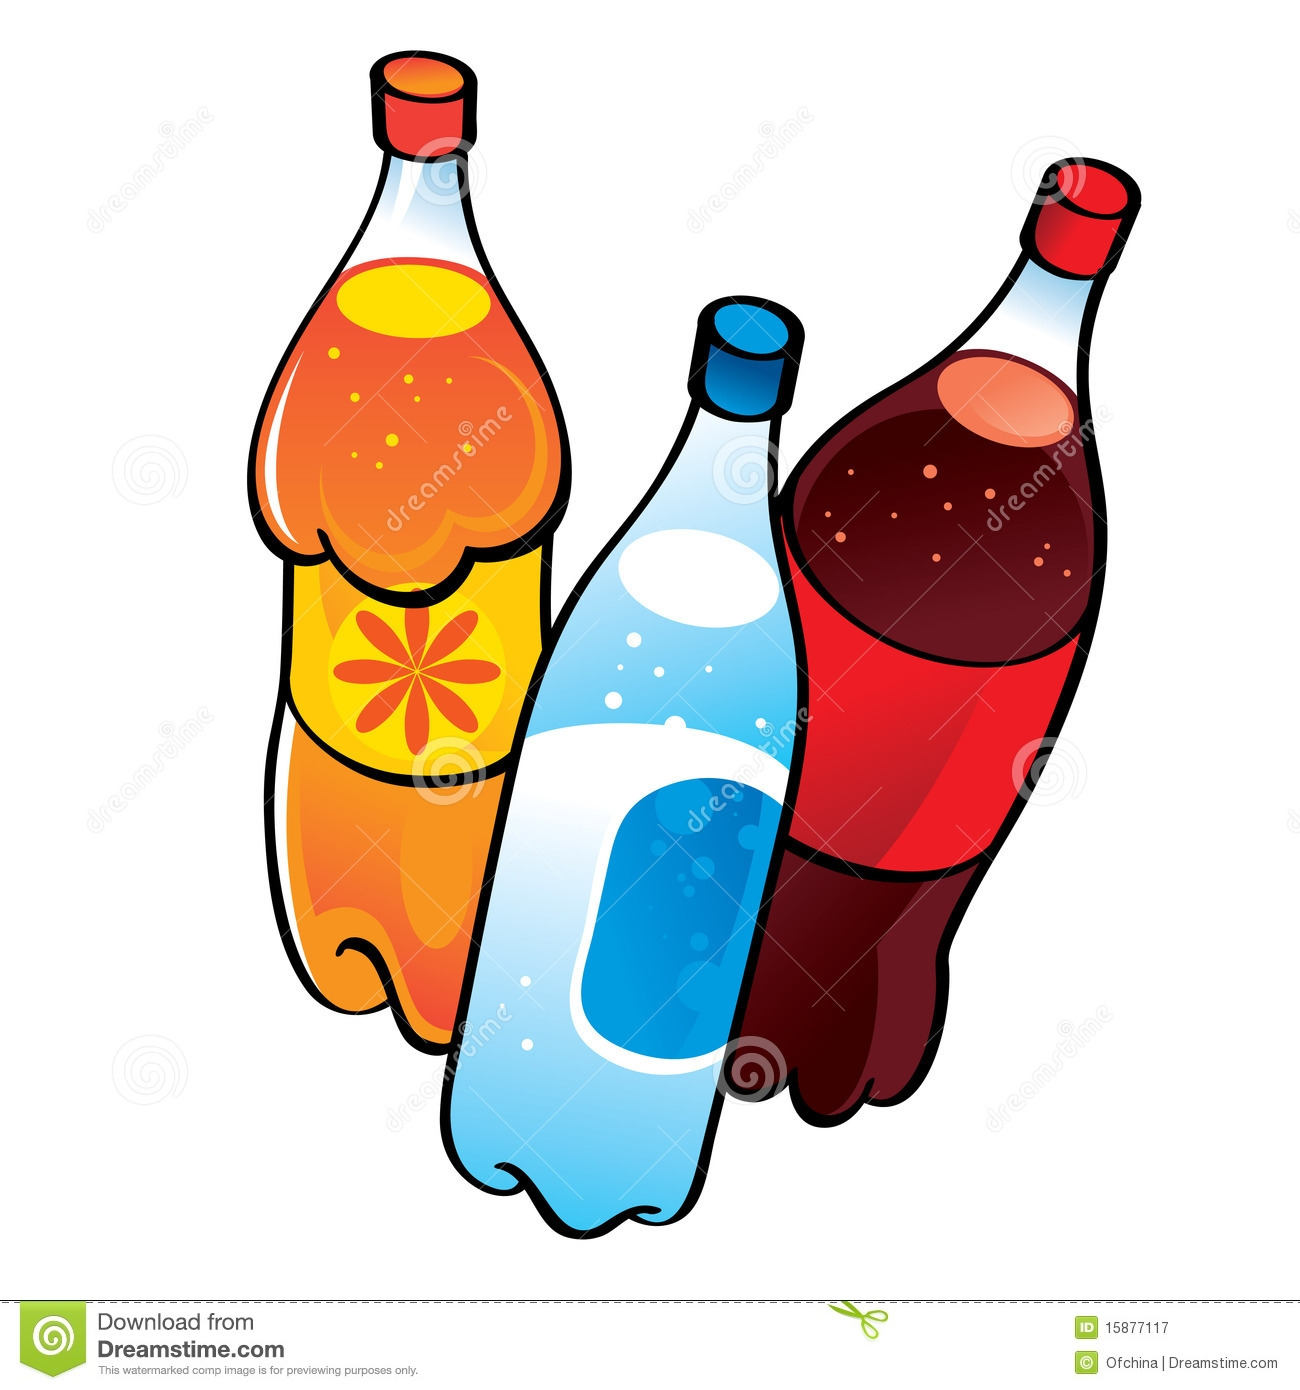 Drink clipart soda water - 118 transparent clip arts, images ... png library